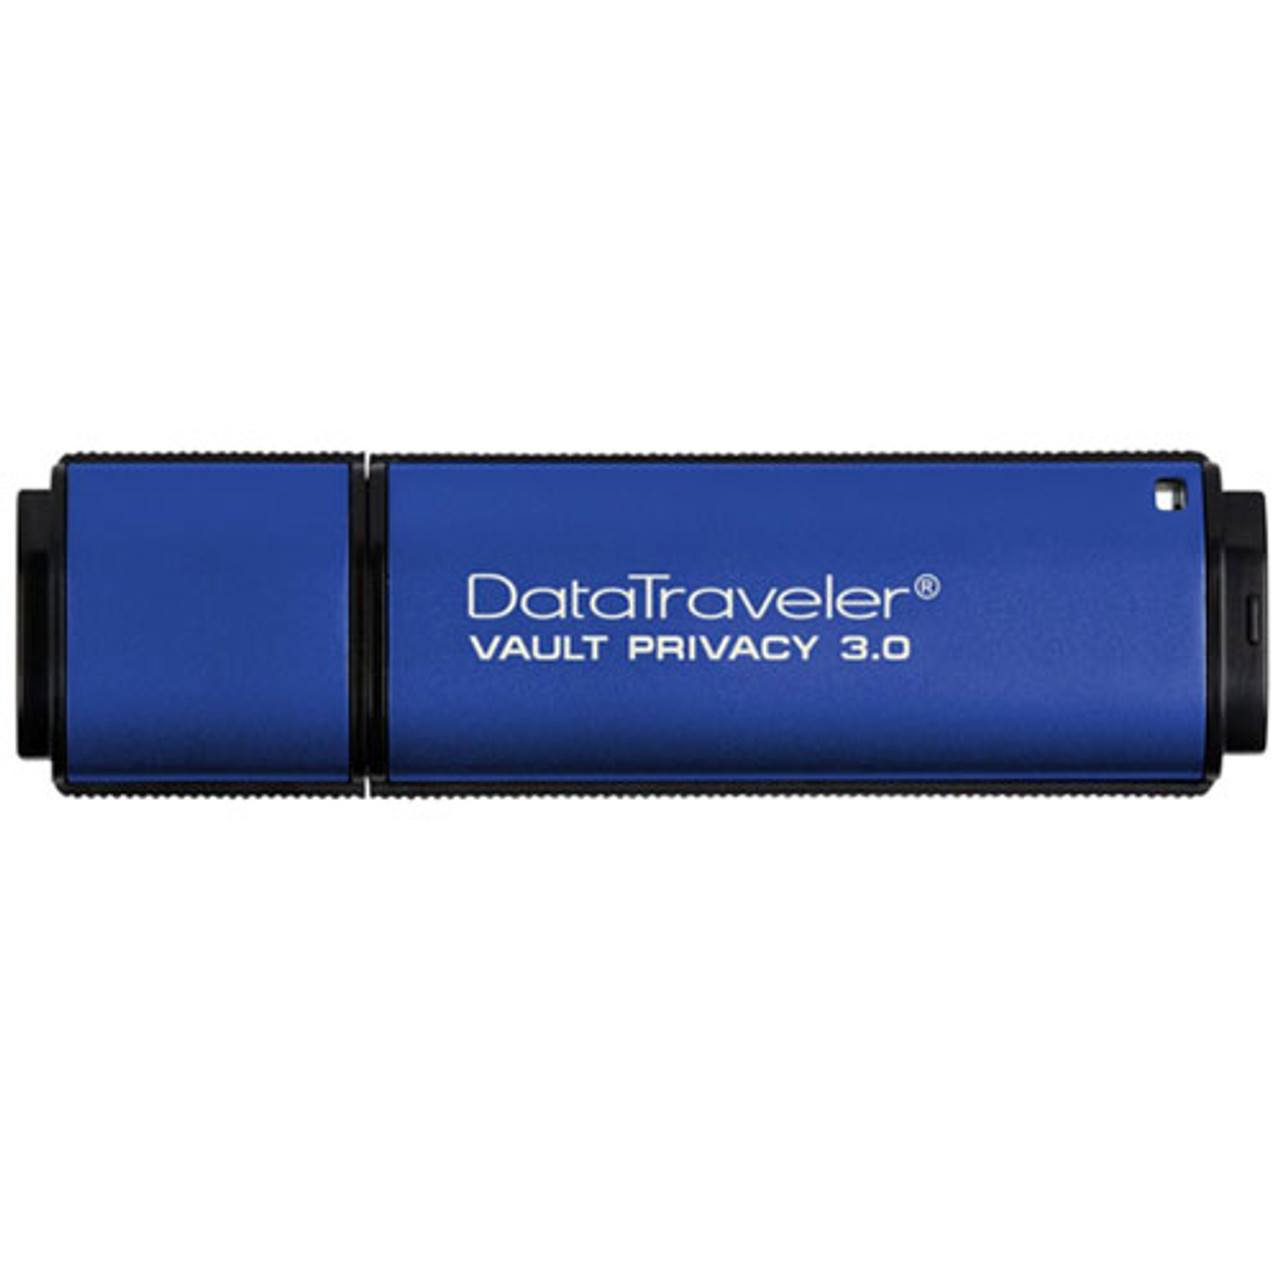 Image for Kingston DataTraveler Vault Privacy 3.0 32GB Flash Drive CX Computer Superstore